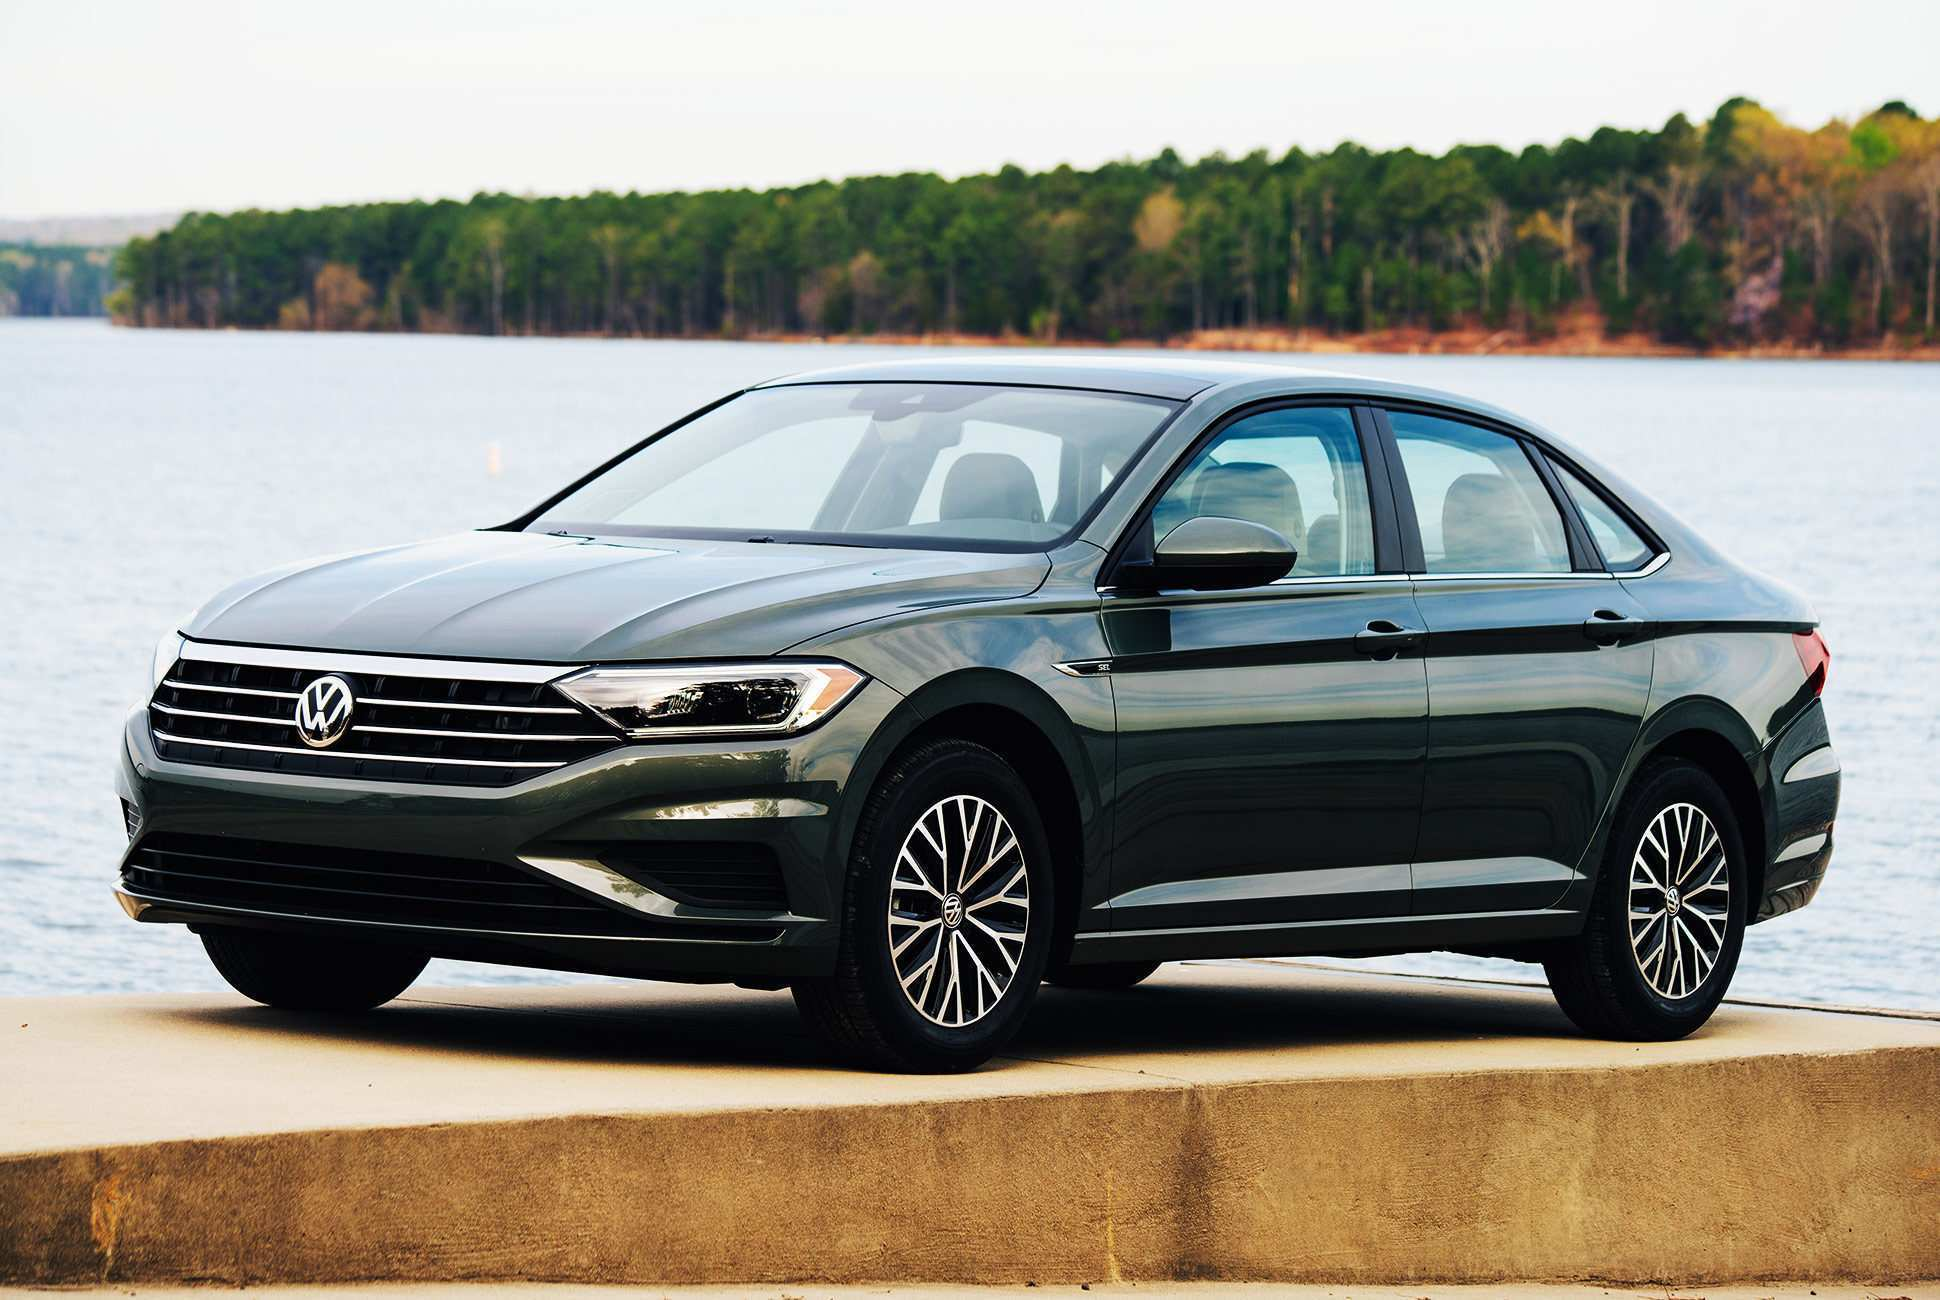 50 Concept of 2019 Vw Jetta Rumors by 2019 Vw Jetta